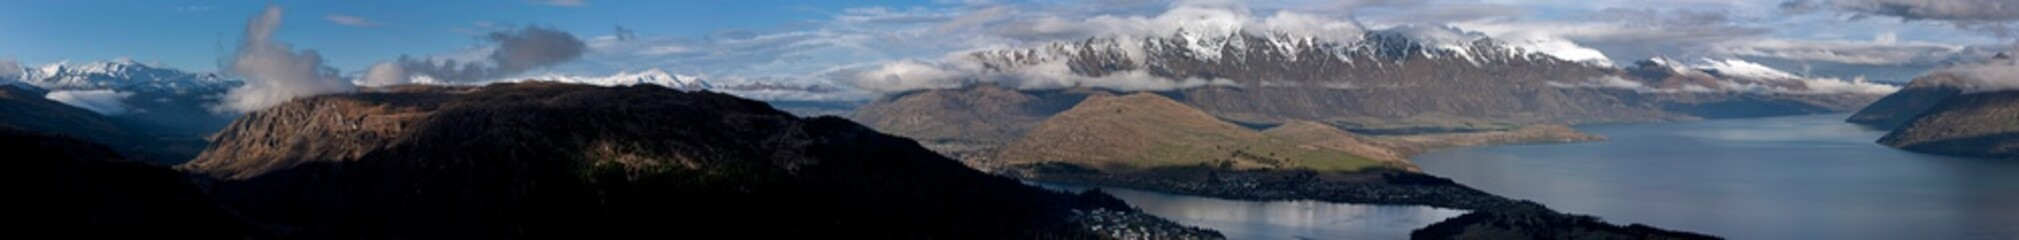 Lake Waktipu Queenstown Panorama. New Zealand. Mountains. The remarkables Aerial